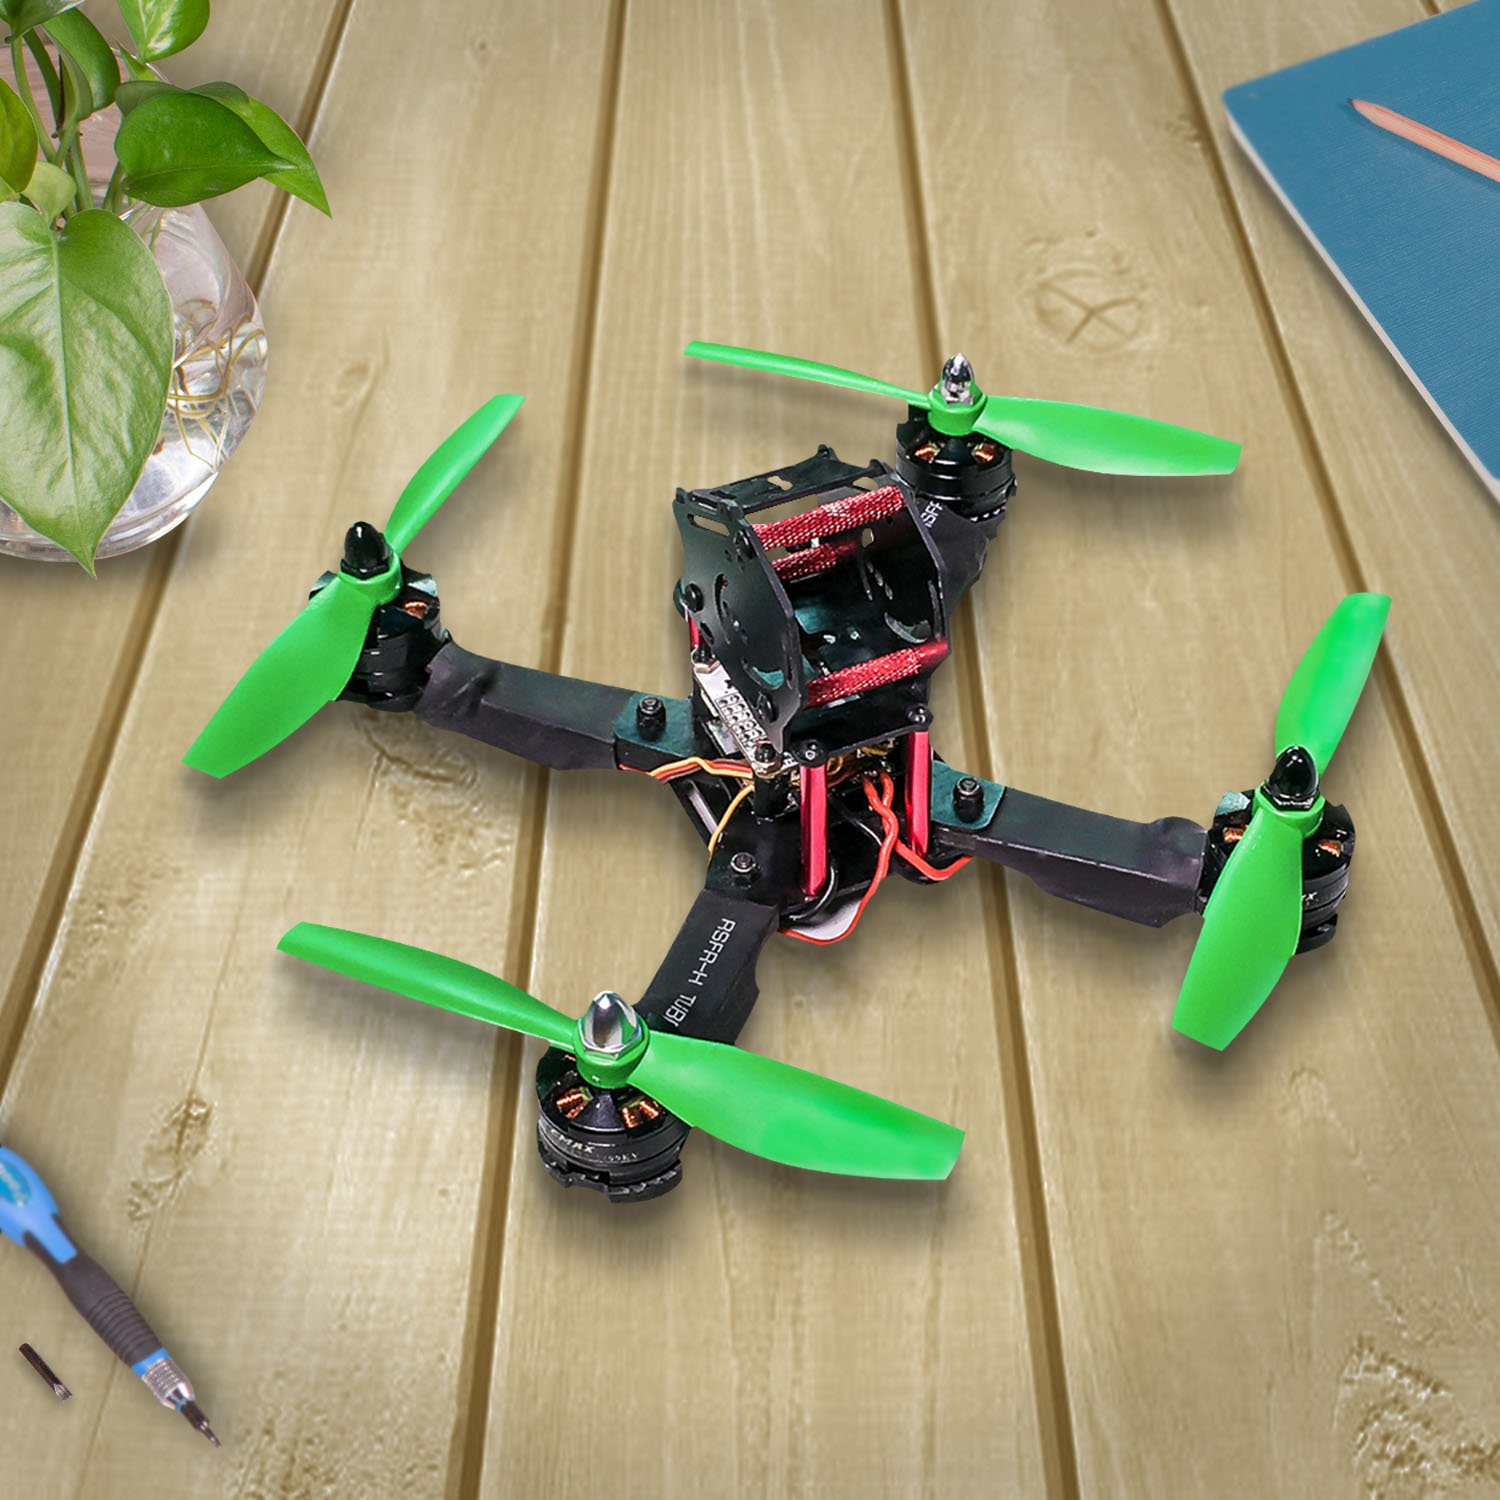 Picture of How to Mount CC3D Flight Controller to Quadcopter (Assembly, Wiring, Software Configuration)